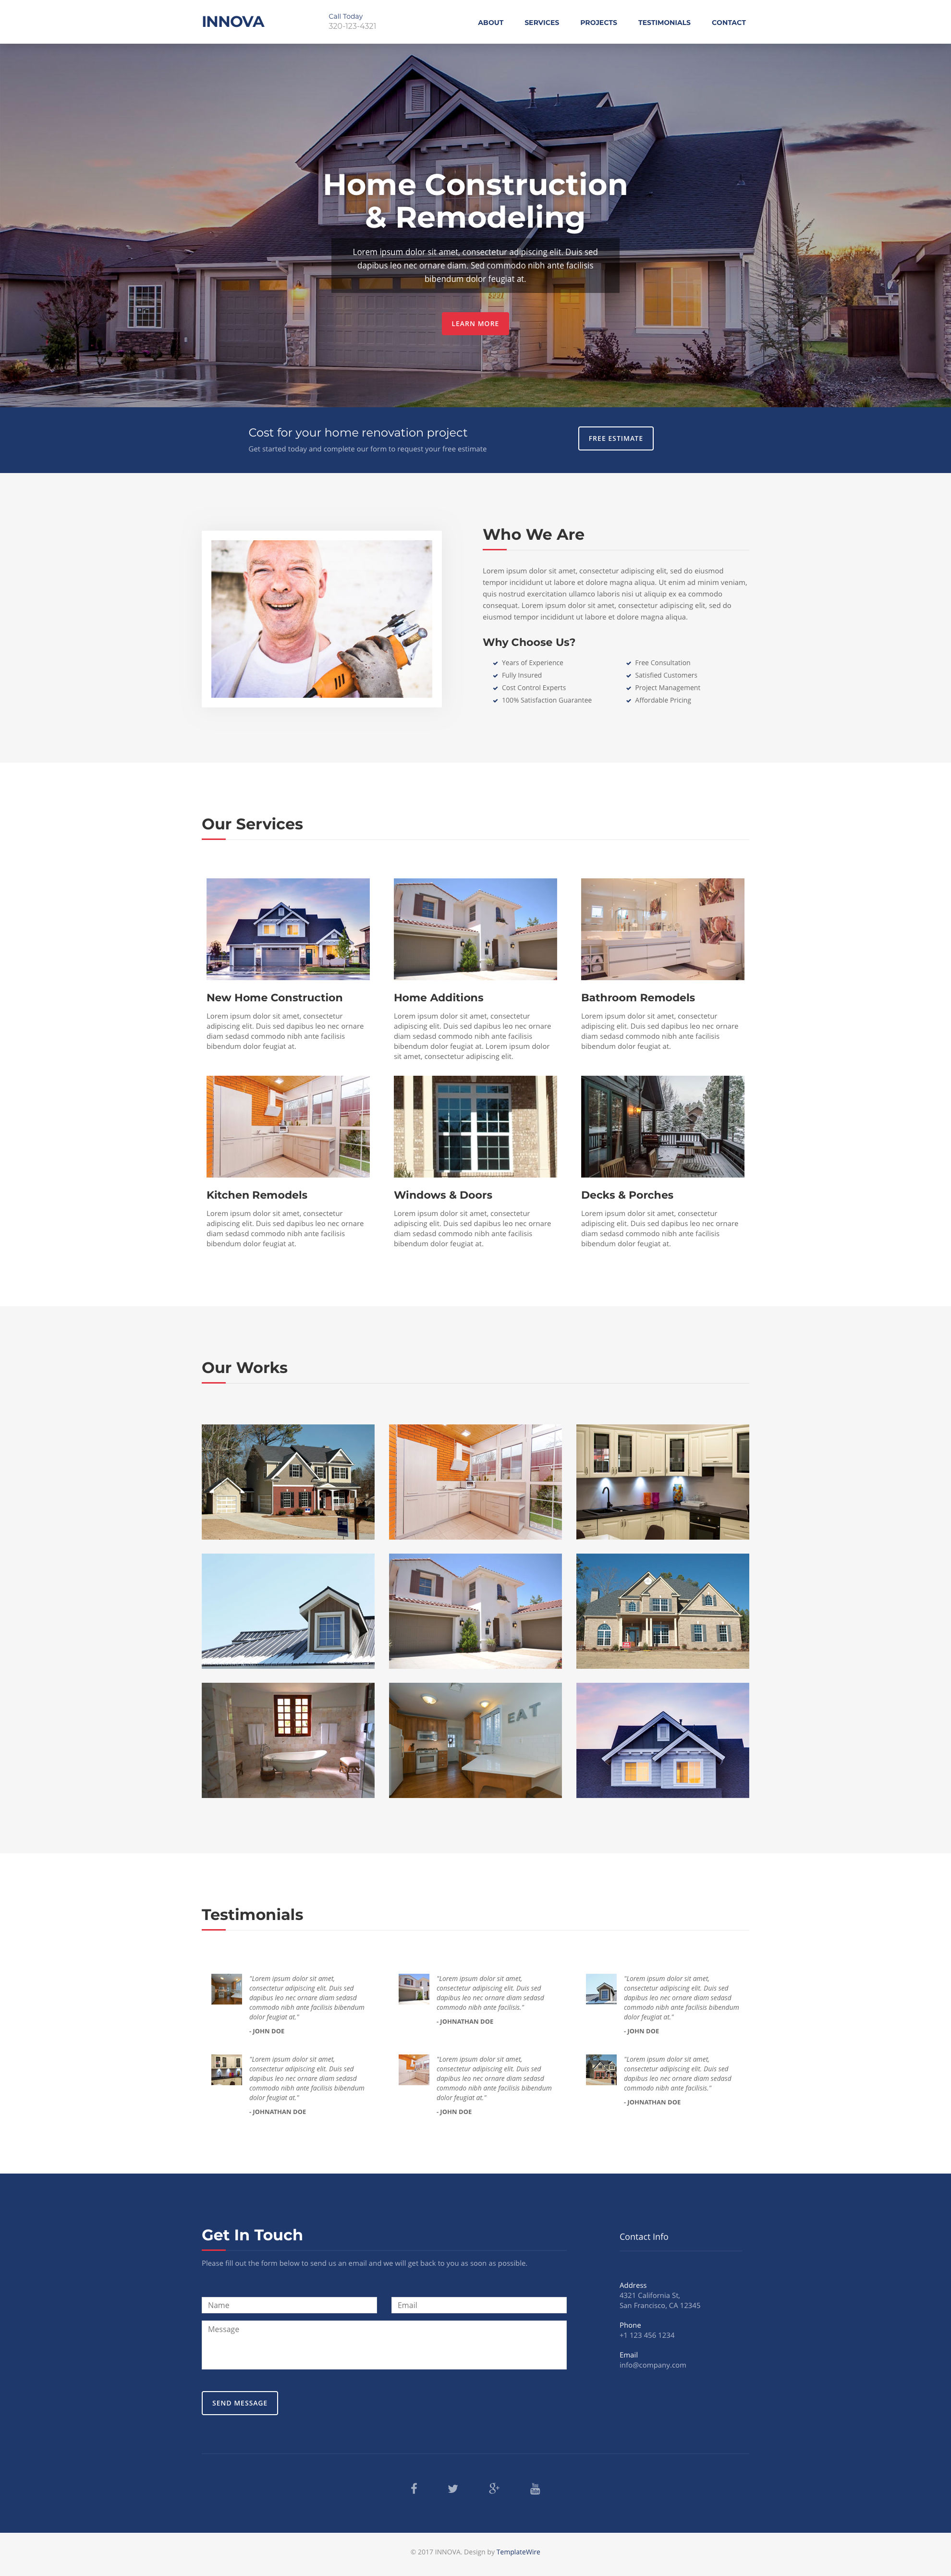 Innova free HTML template is a free one page HTML5 website template powered by Bootstrap. This template suited for construction based websites. Innova free HTML template is built on Bootstrap framework and contains 5 sections: About, Services, Projects, Testimonials and Contact. It has an fully responsive layout, testimonials section, working contact form and more.